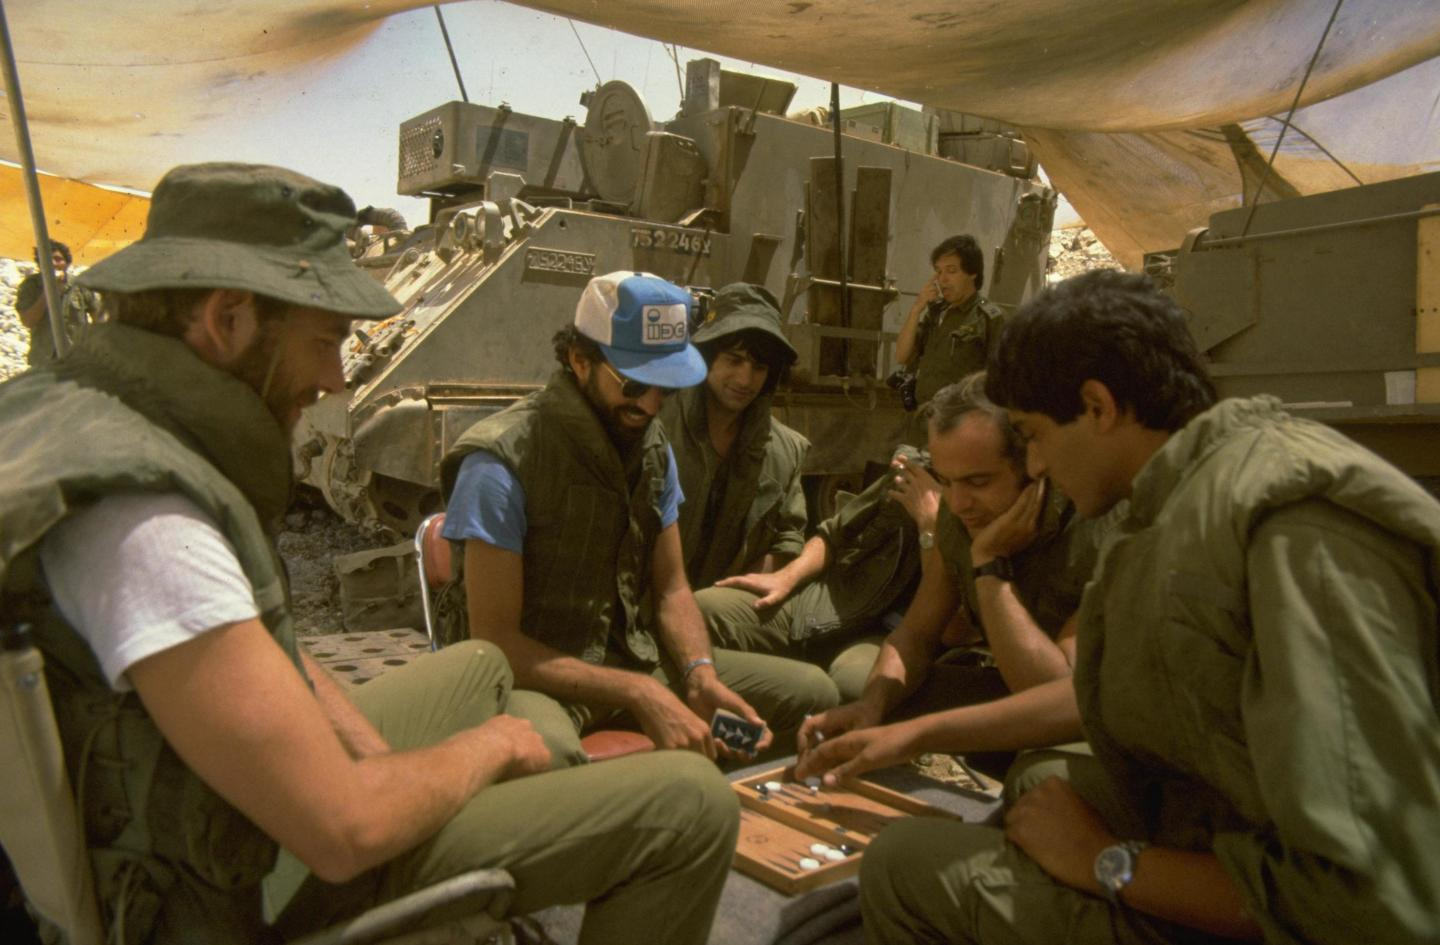 Members of 155 mm mobile gun crew play backgammon during a lull outside Beirut.